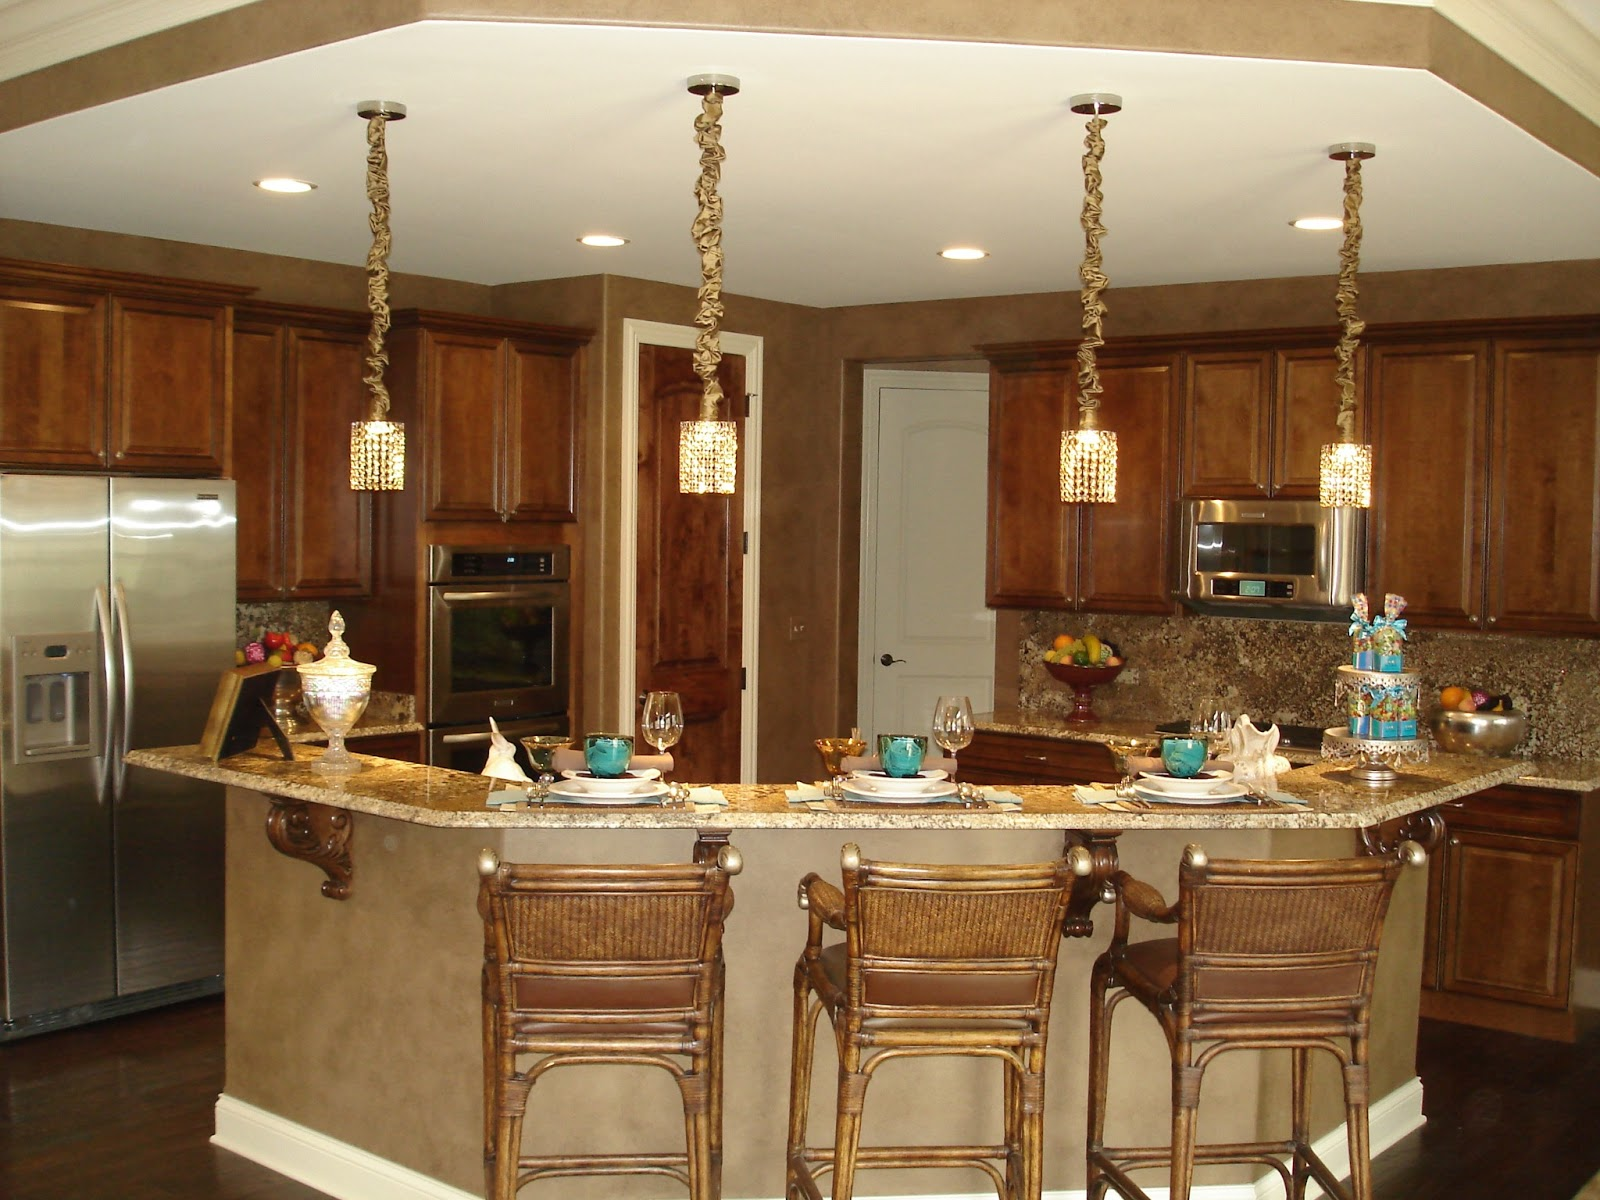 Kitchen Islands Add Beauty Function And Value To The: KLM Builders Inc.: Updating Your Kitchen: Popular Design